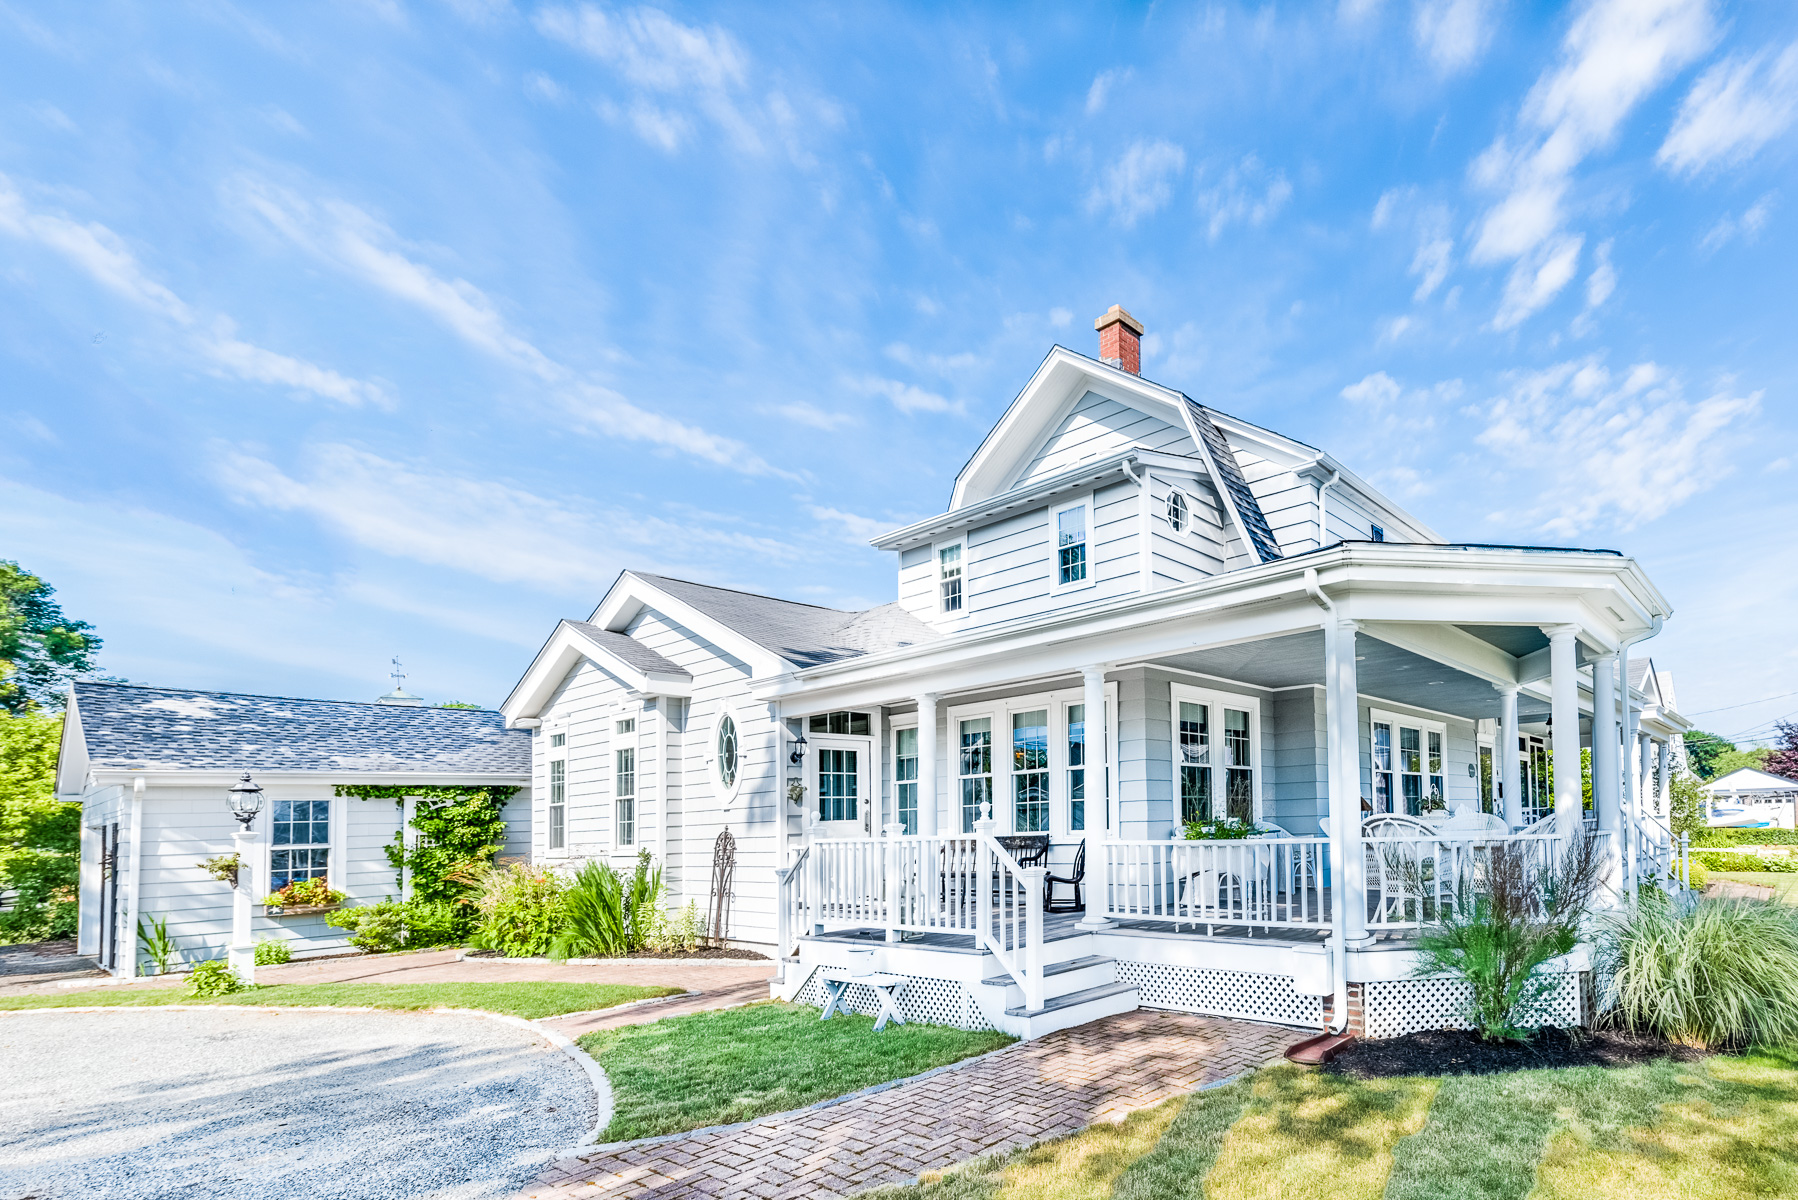 Single Family Home for Sale at 4 Matteson St, North Kingstown, RI North Kingstown, Rhode Island 02852 United States